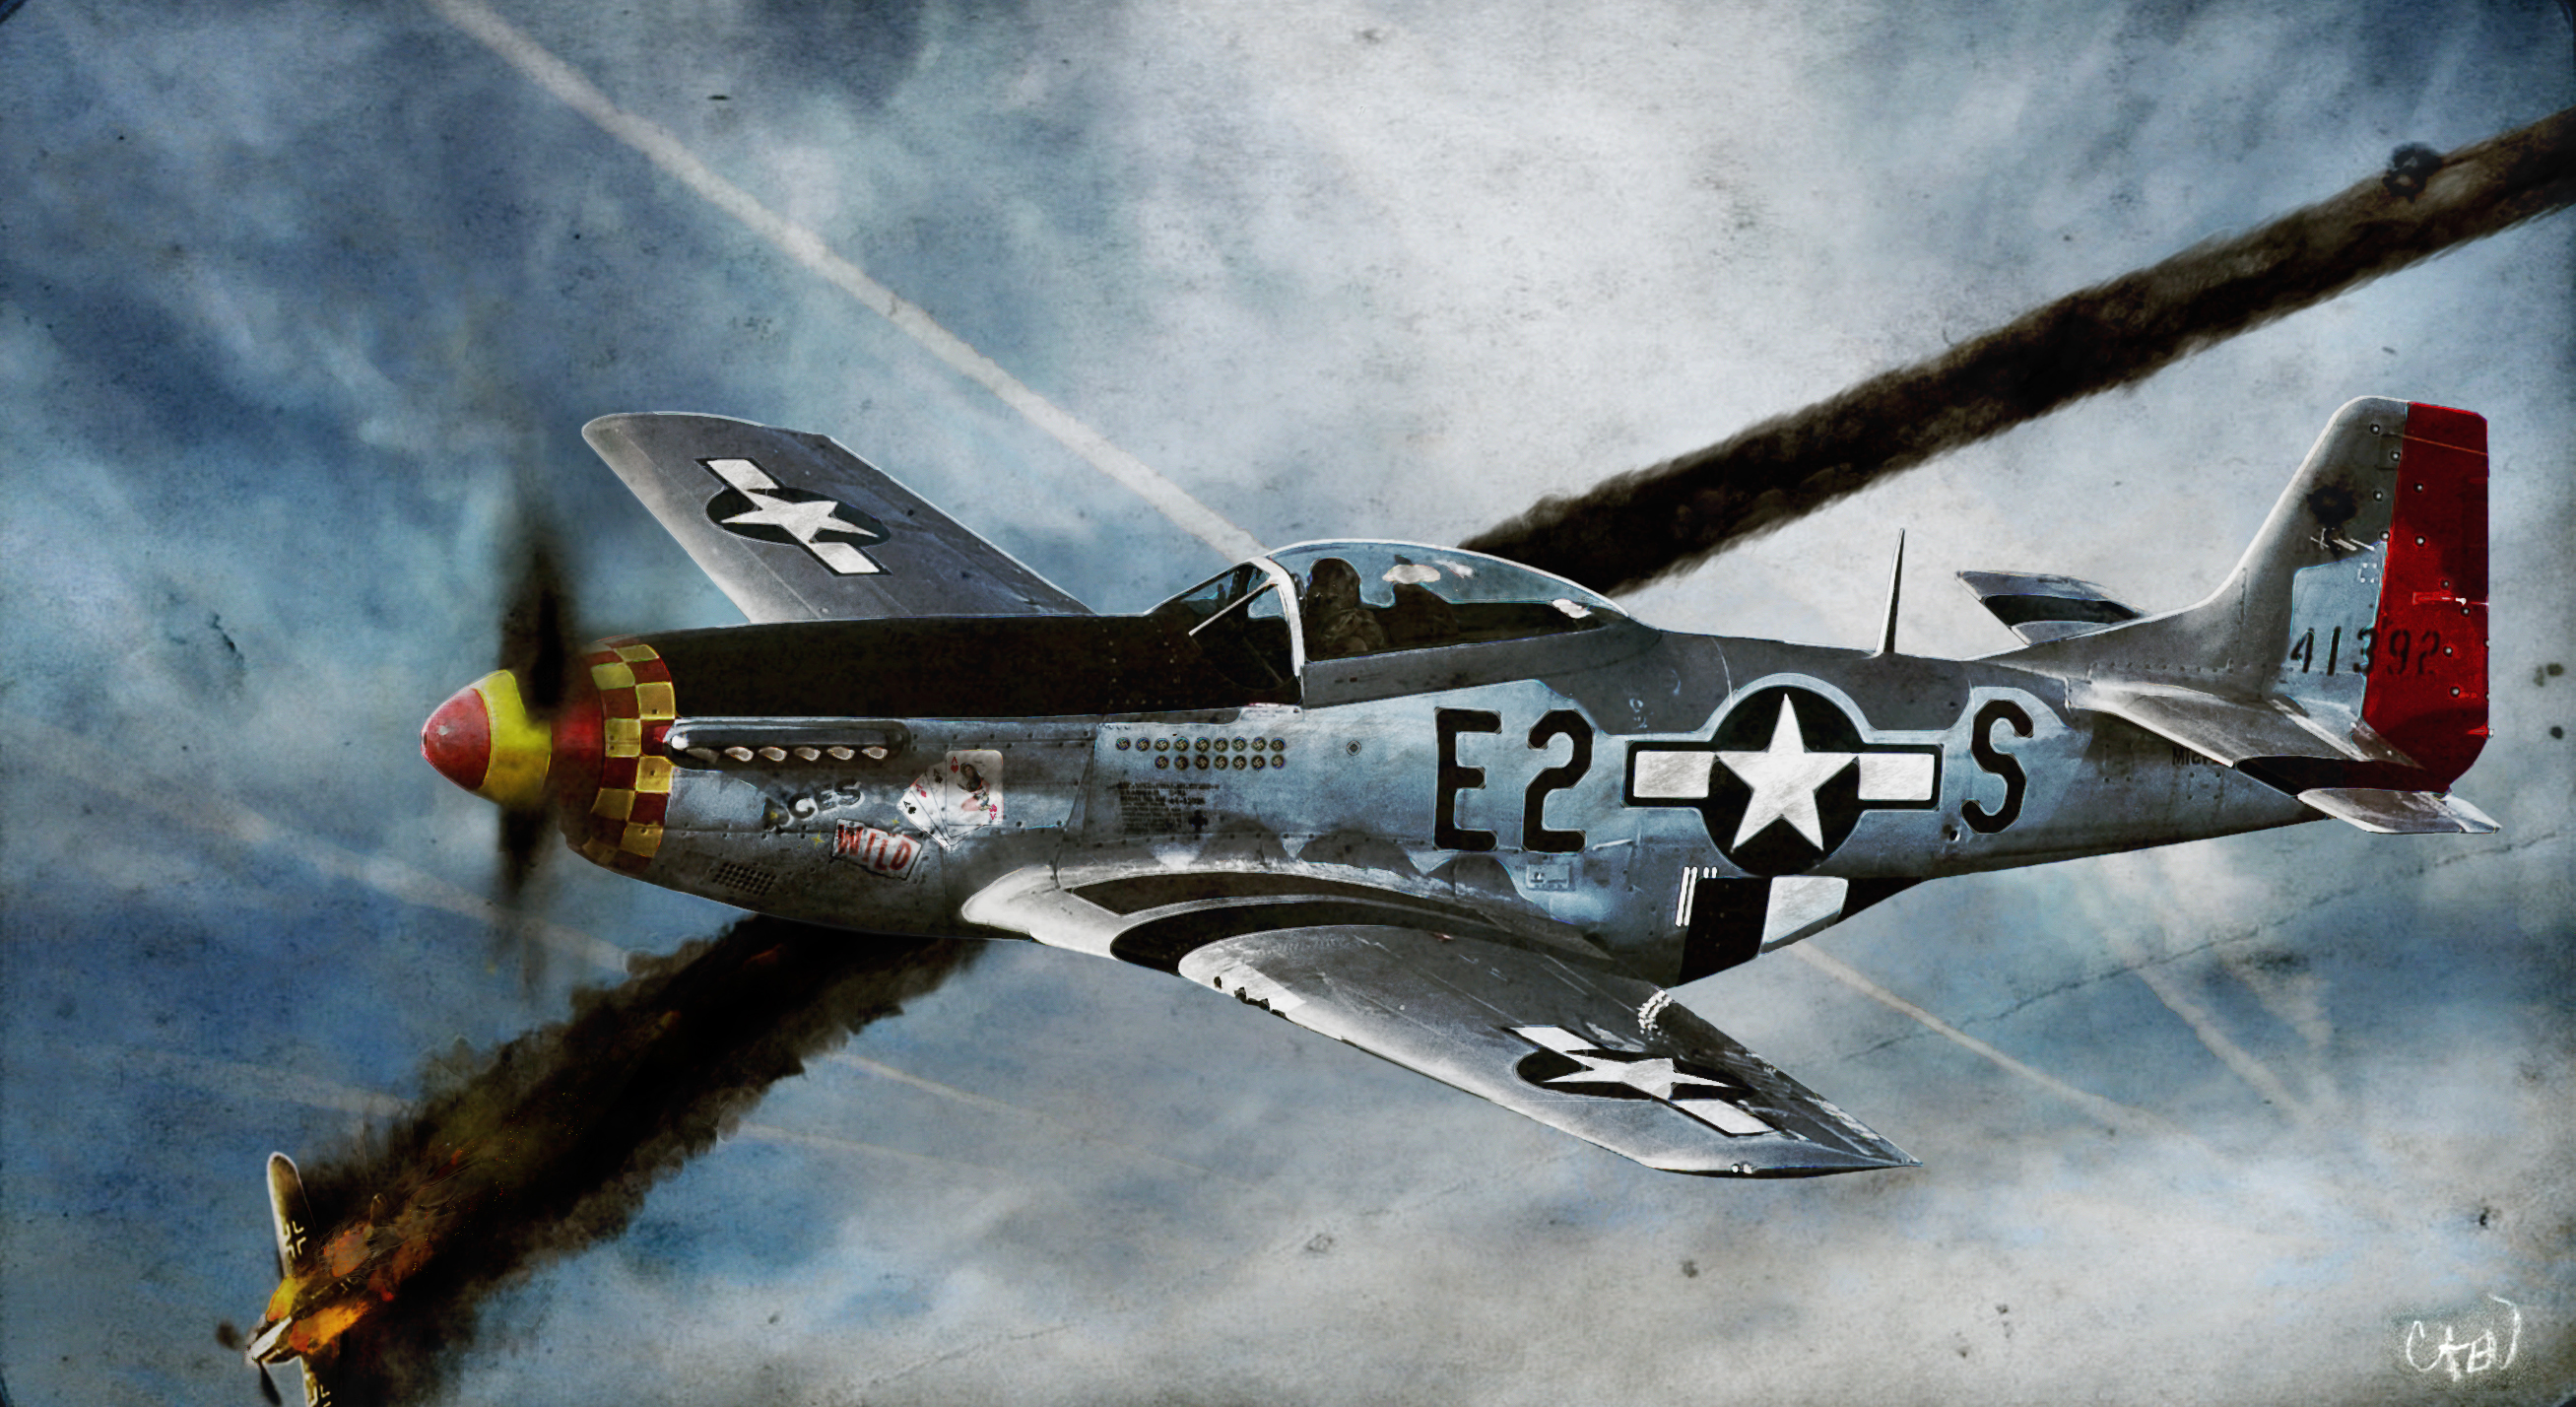 North American P 51 Mustang Computer Wallpapers Desktop Backgrounds 2615x1428